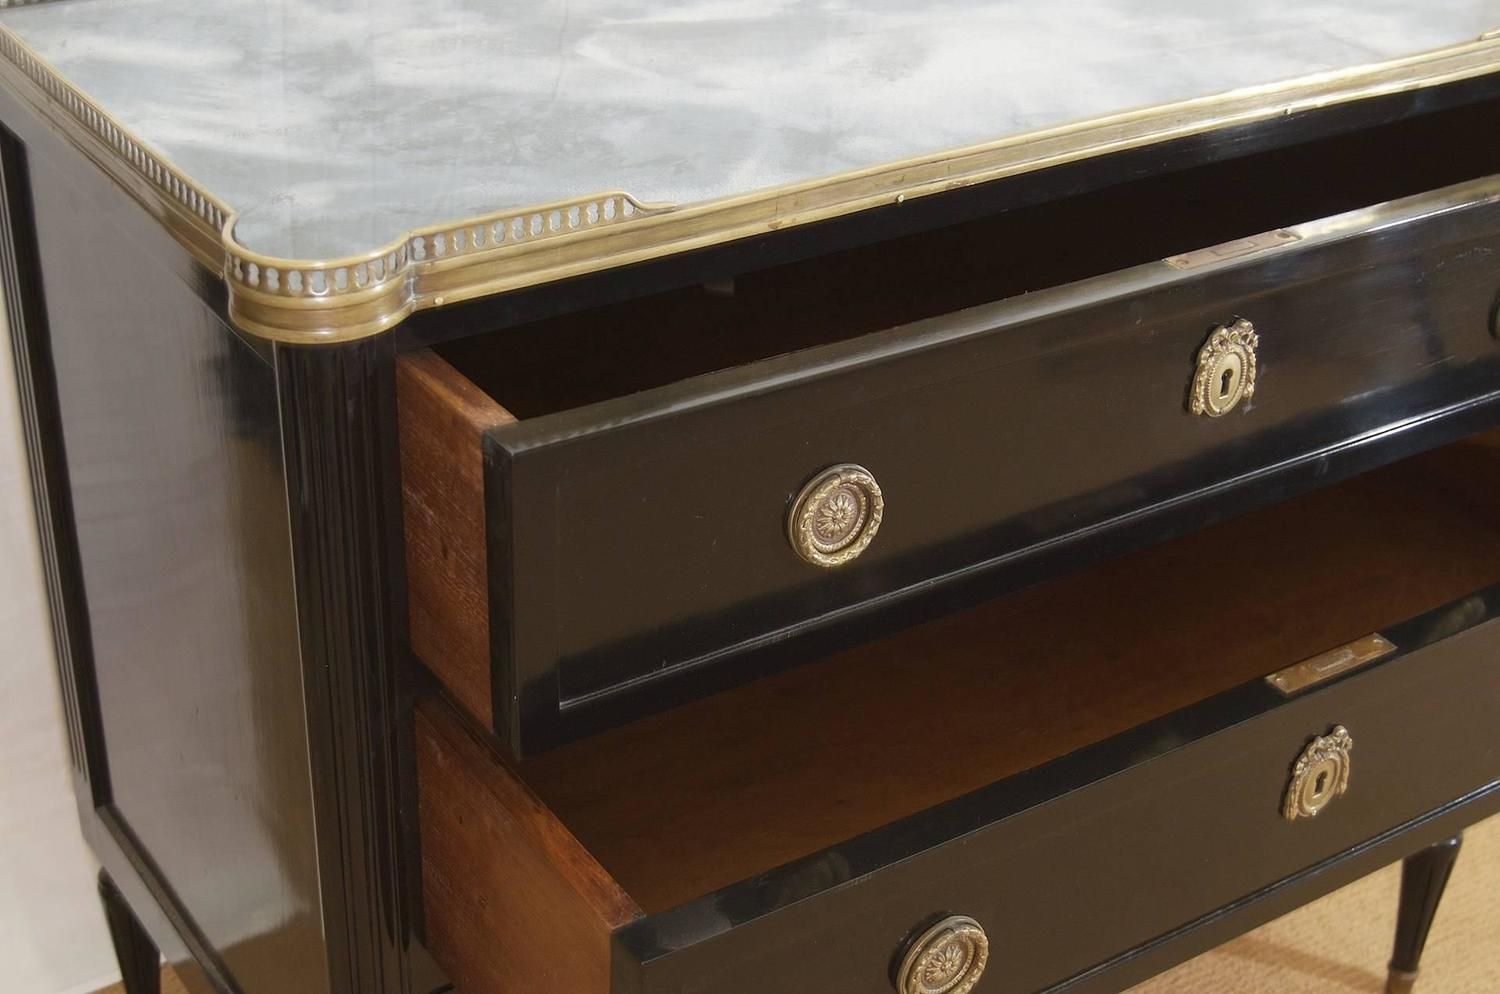 Louis XVI Style Ebonized Commode with Mirror Top | From a unique collection of antique and modern commodes and chests of drawers at https://www.1stdibs.com/furniture/storage-case-pieces/commodes-chests-of-drawers/